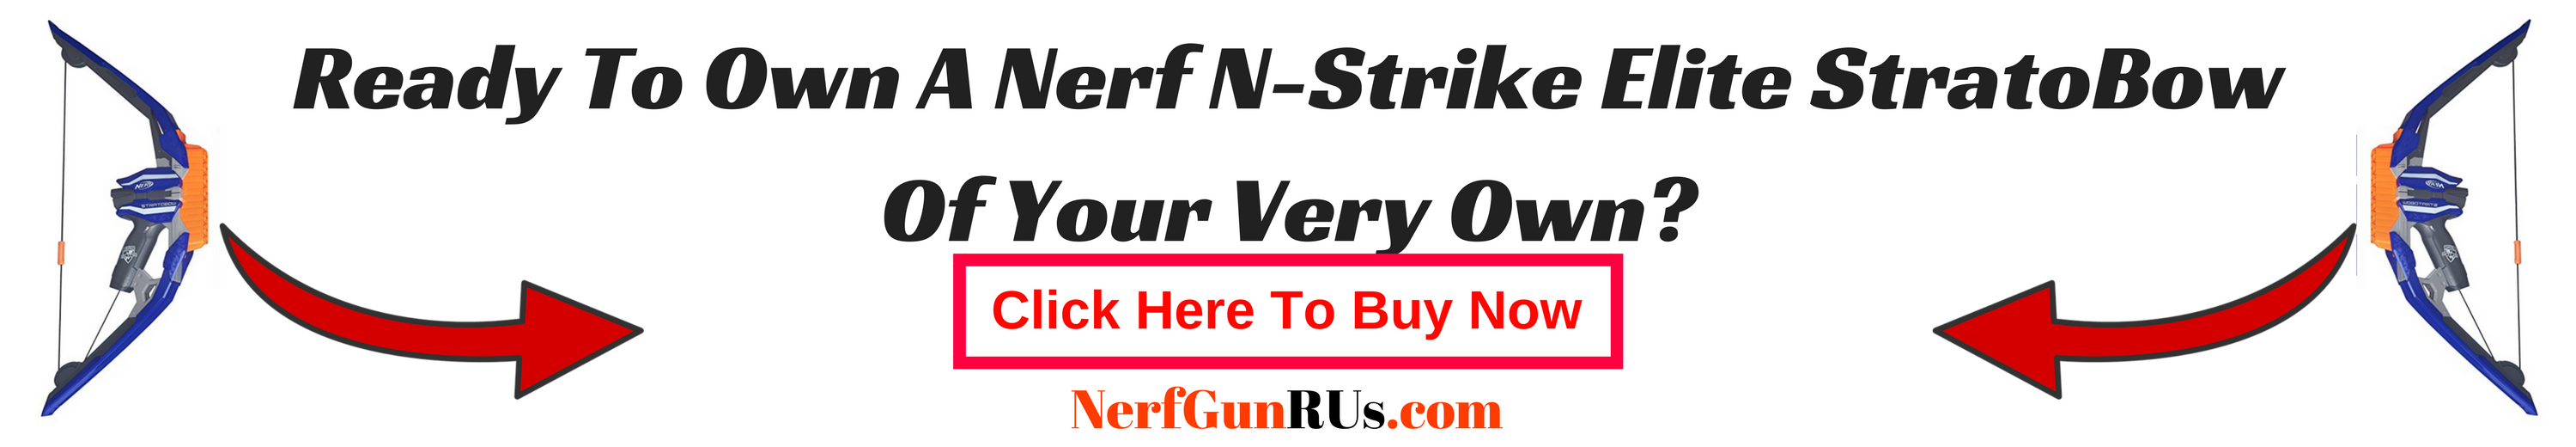 Ready To Own A Nerf N-Strike Elite StratoBow Of Your Very Own_